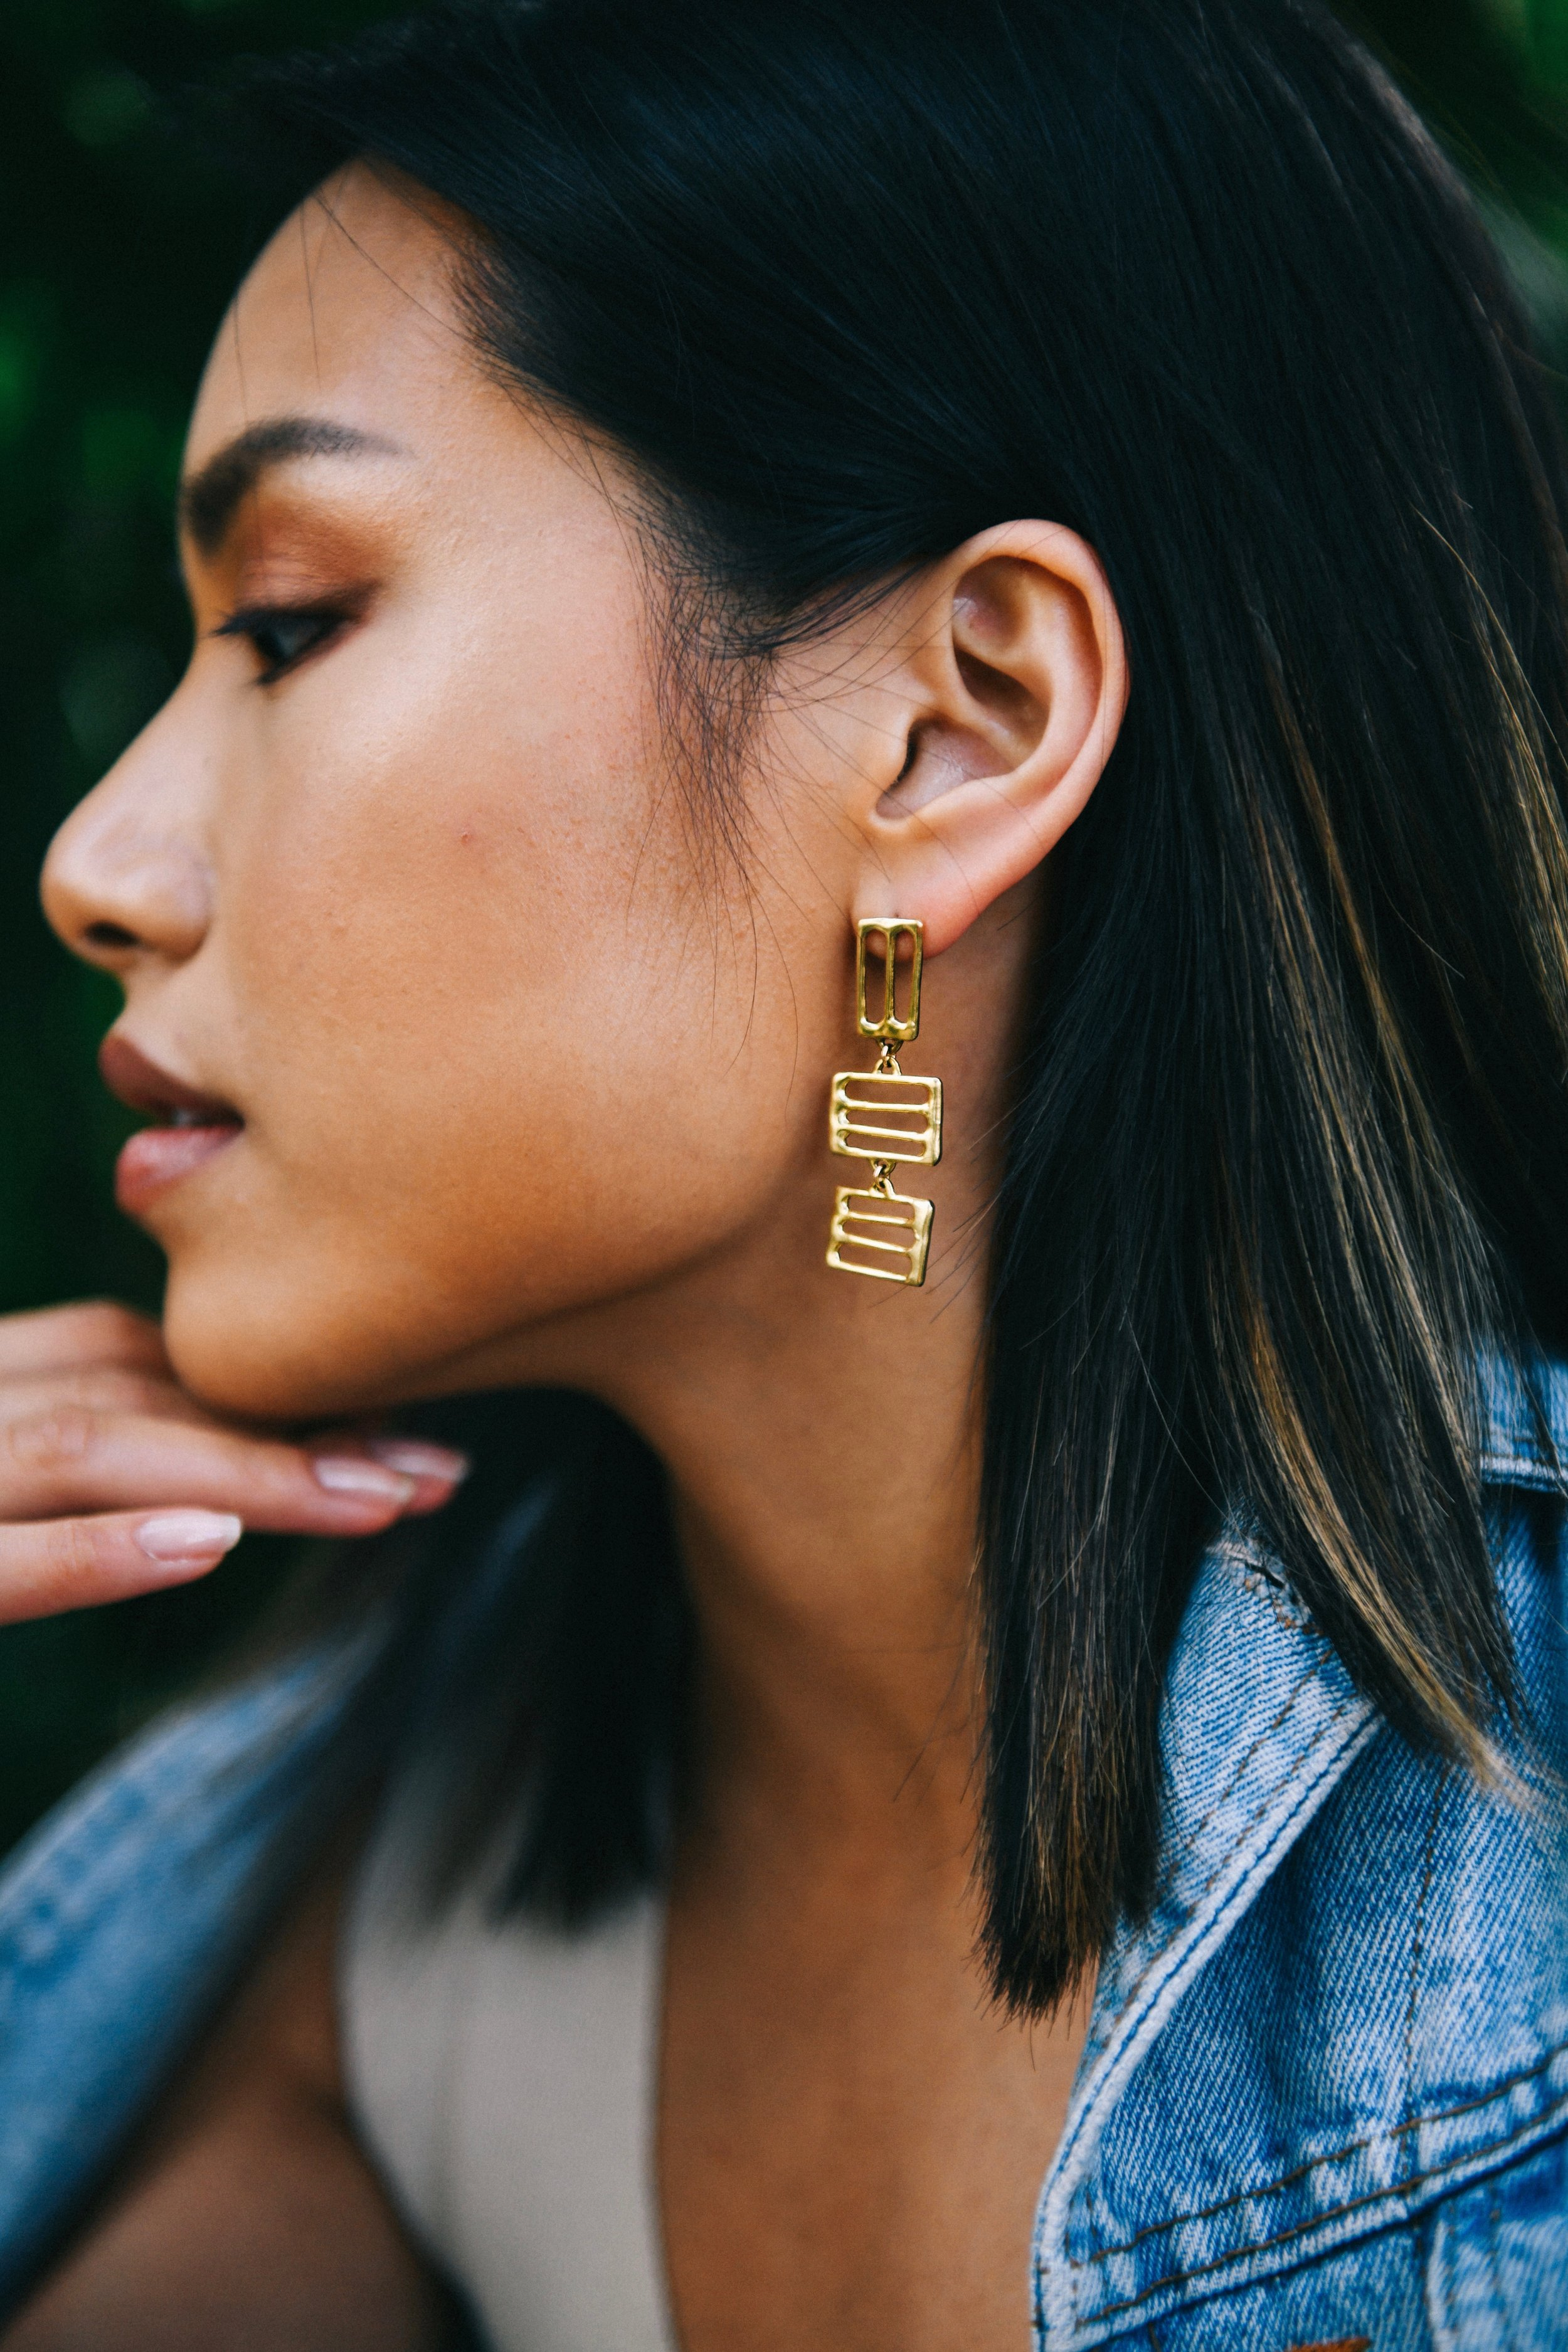 Libby Trajkovski is the owner and artisan behind the brand Goldeluxe Jewelry. Goldeluxe is a line of handmade jewelry intended for everyday wear - design forward, delicate and easy to wear with anything.  -